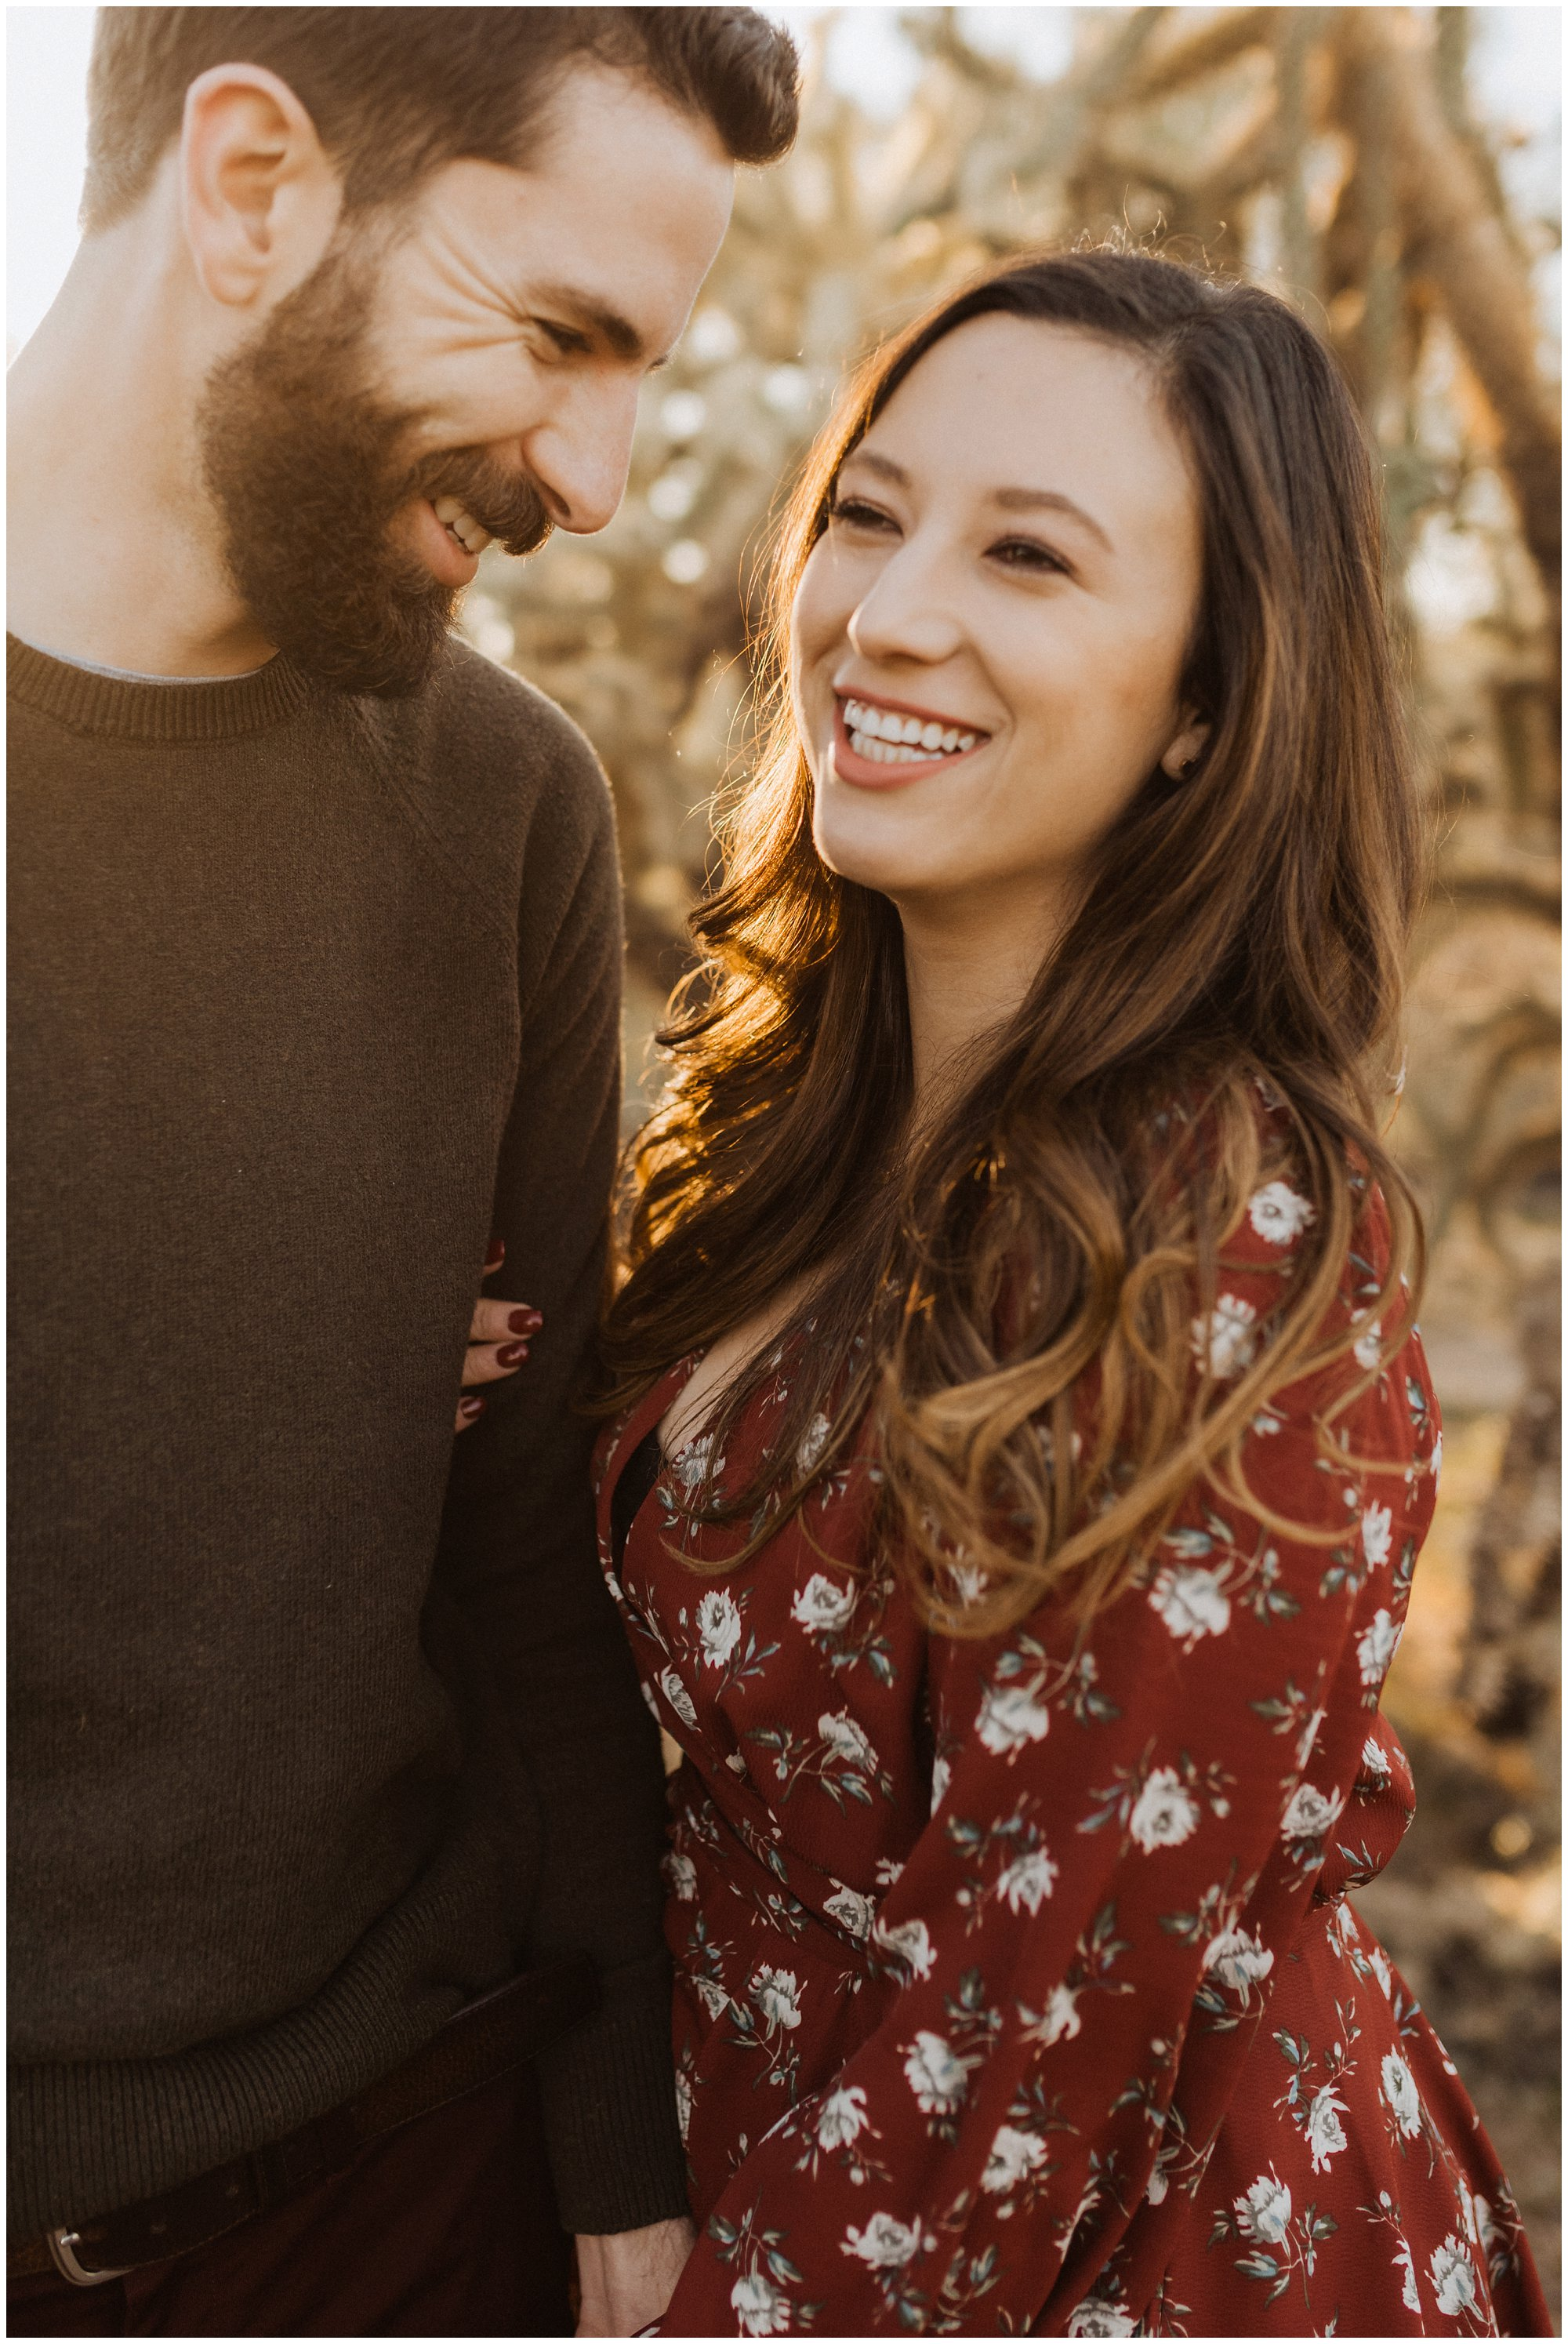 Arizona Desert Engagement Session - Megan + Geno - Ashtyn Nicole Photo_0009.jpg